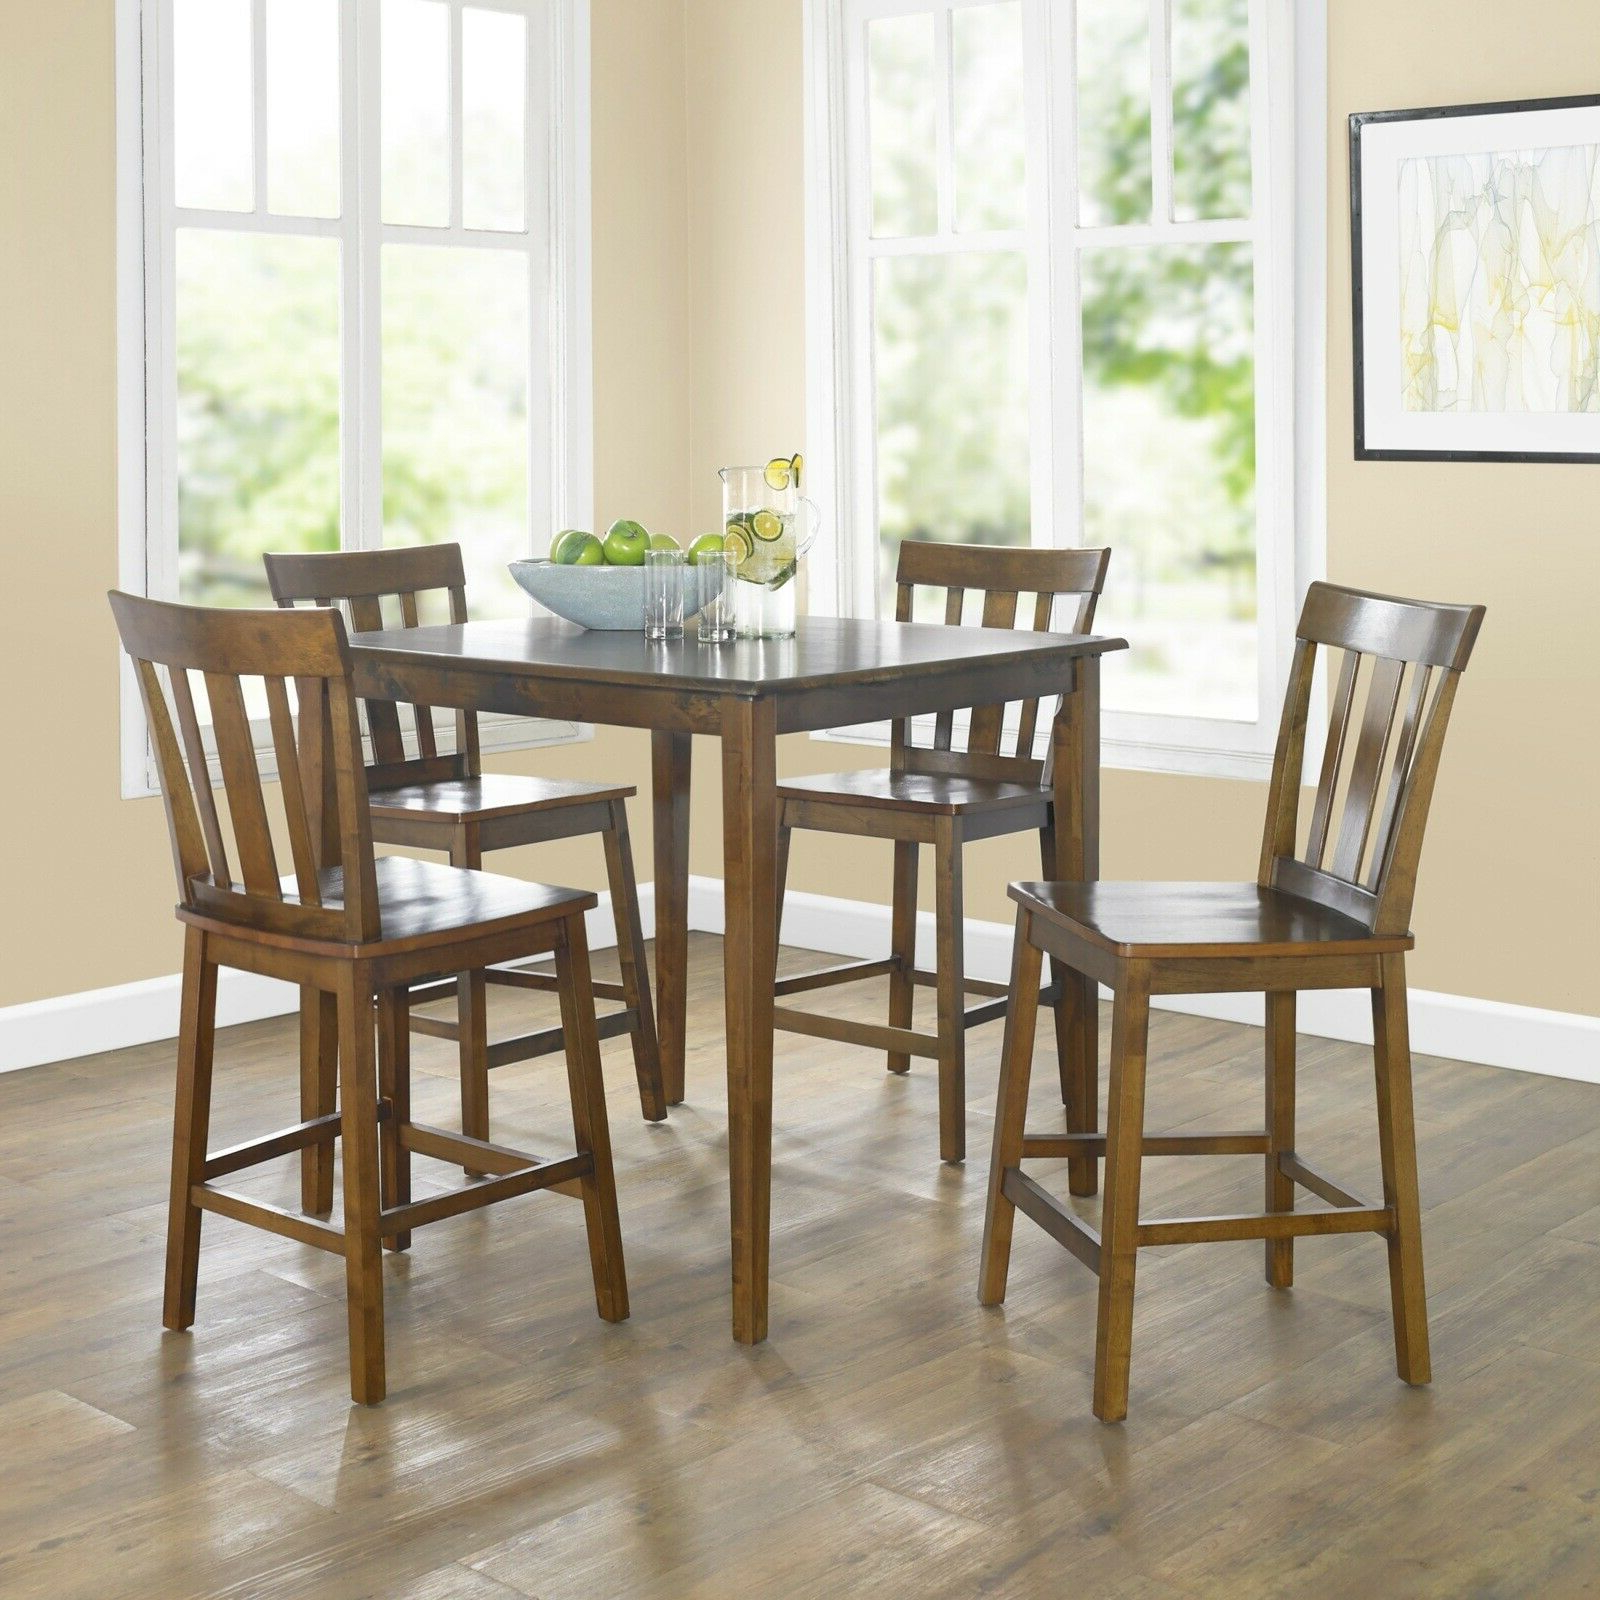 Well Liked 5 Piece Breakfast Nook Dining Sets In Details About Table And Chairs Dining Set Counter Height Sets 5 Piece  Kitchen Pub Breakfast (View 18 of 20)